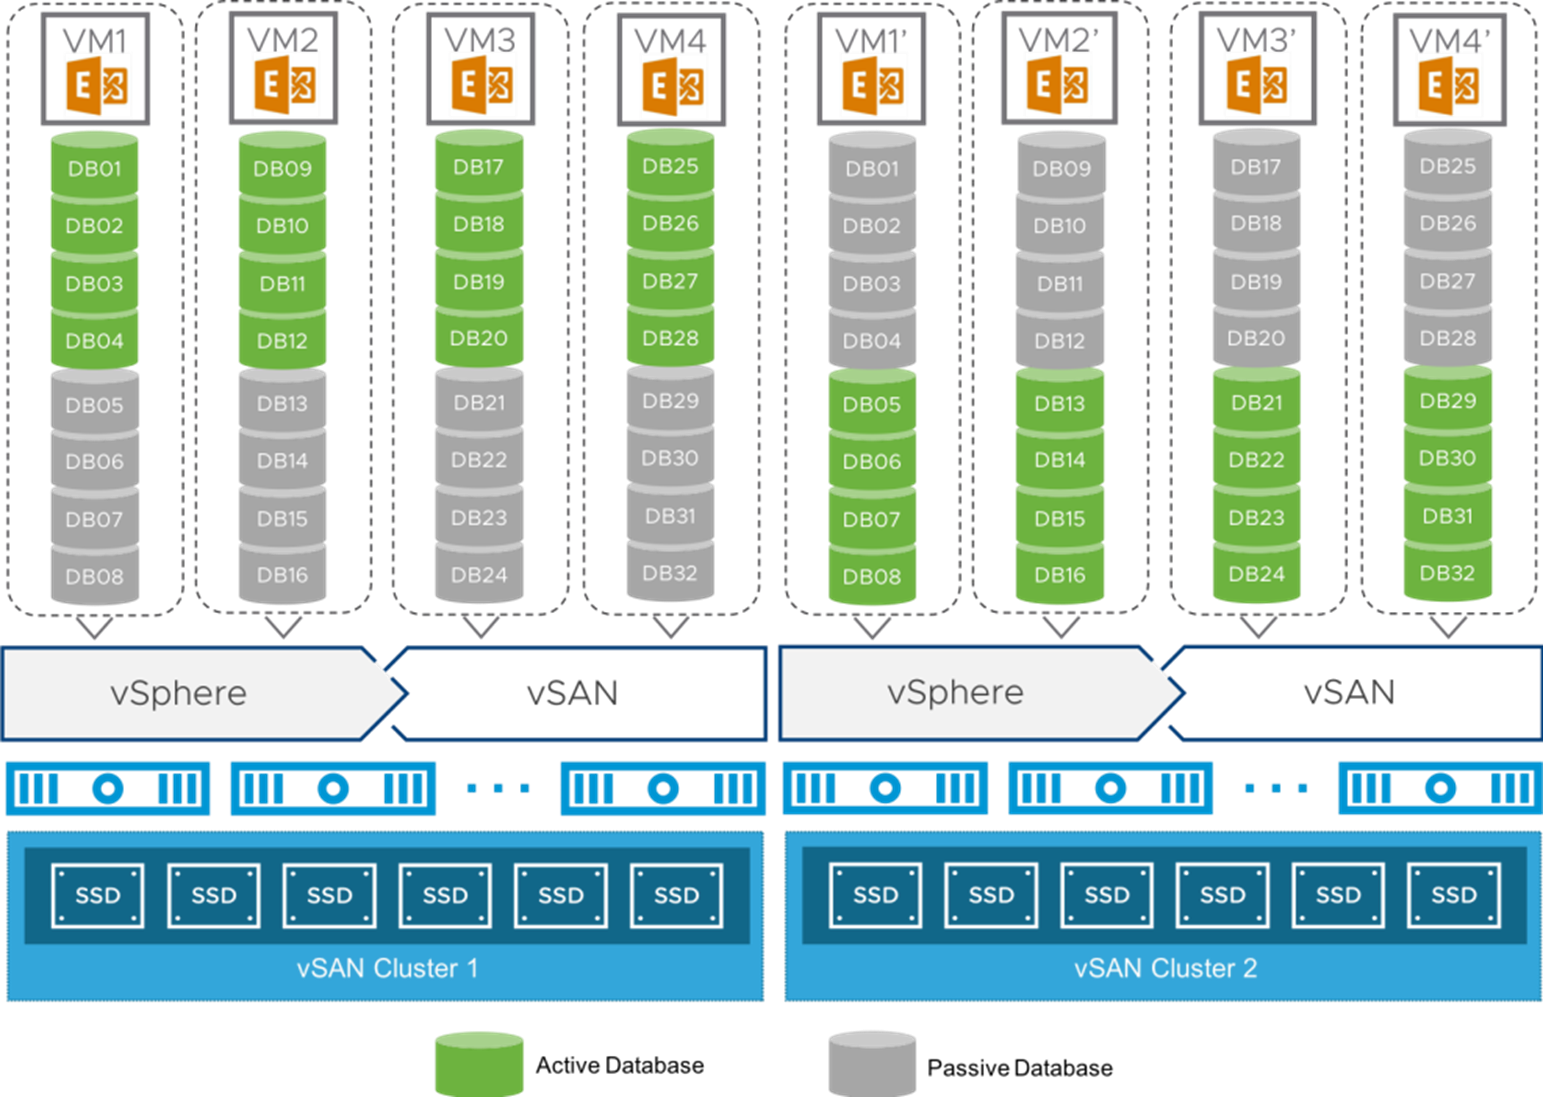 20,000 Mailbox Resilience Solution Architecture on VMware vSAN